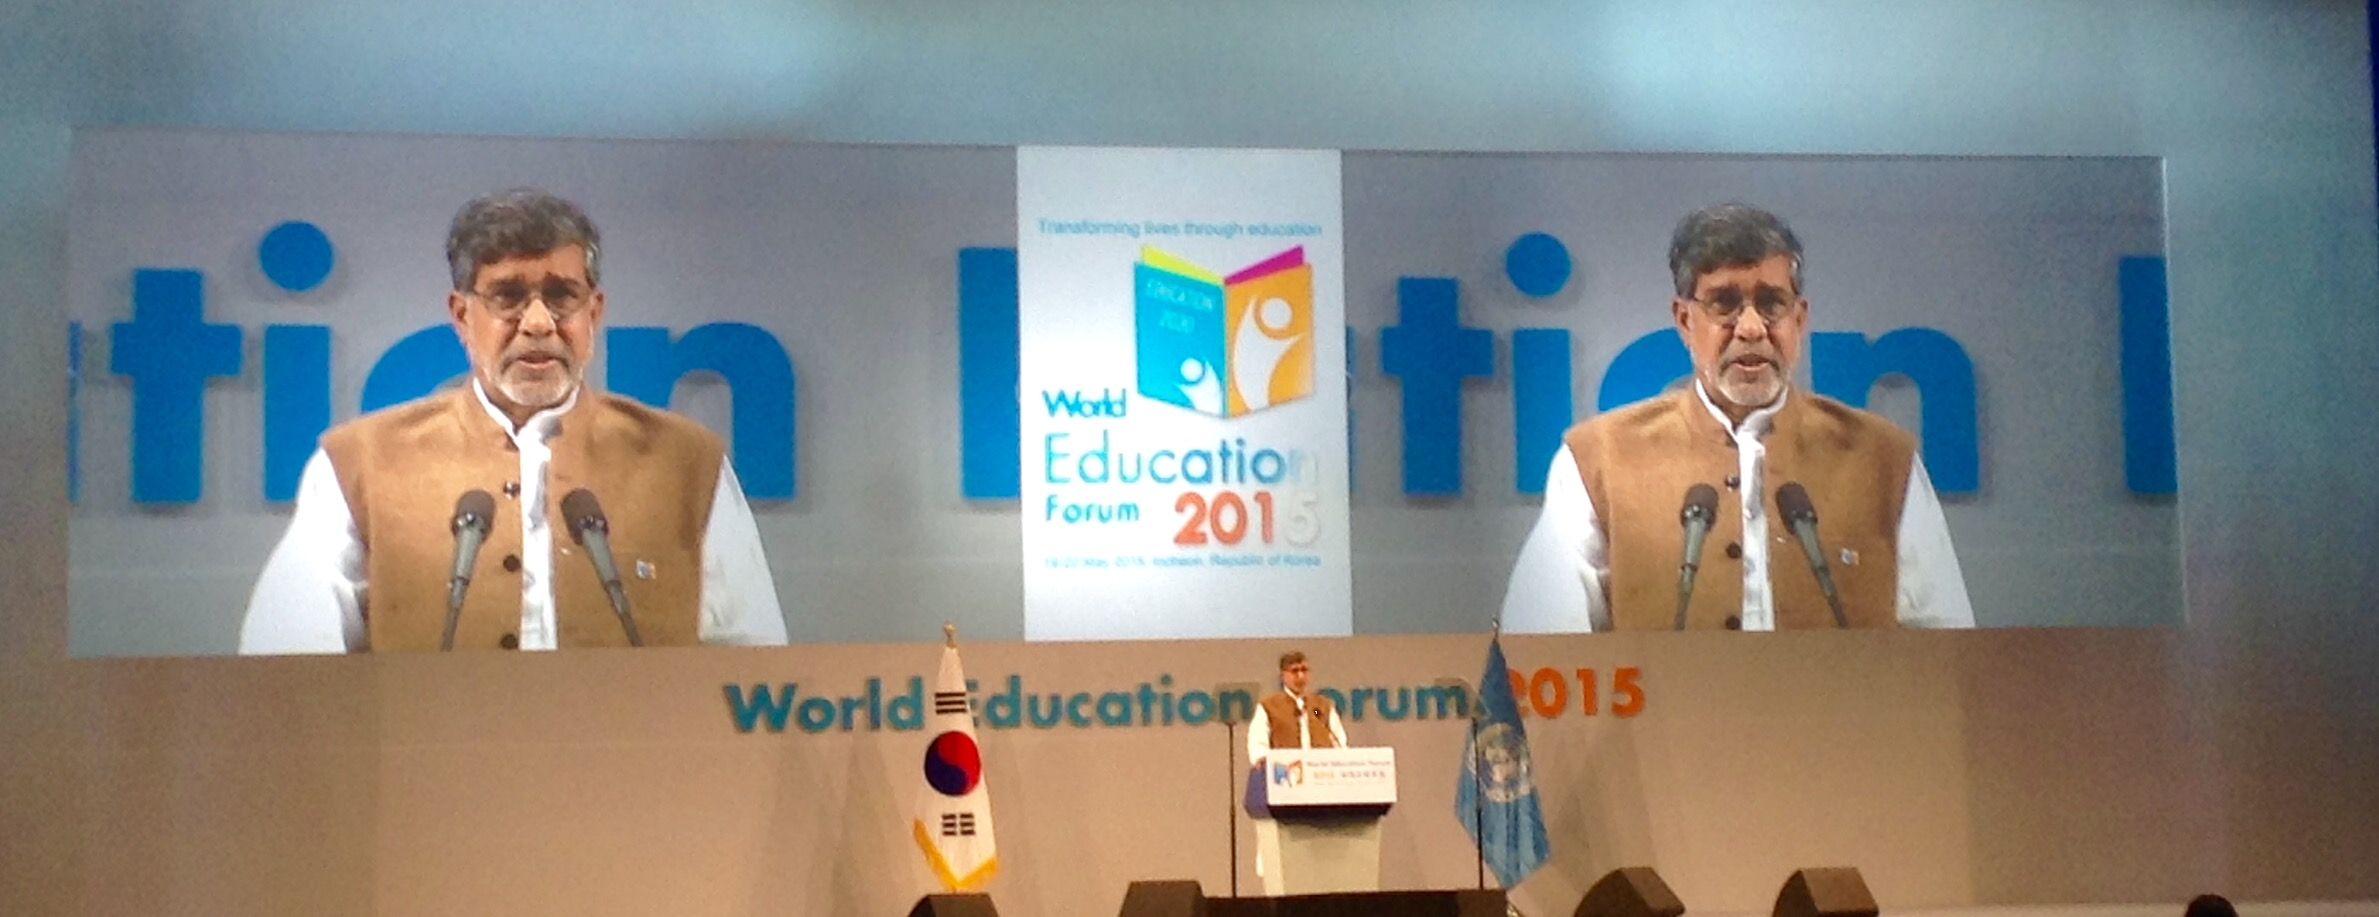 world education forum2015, Kailash Satyarthi, 2014 peace nobel award